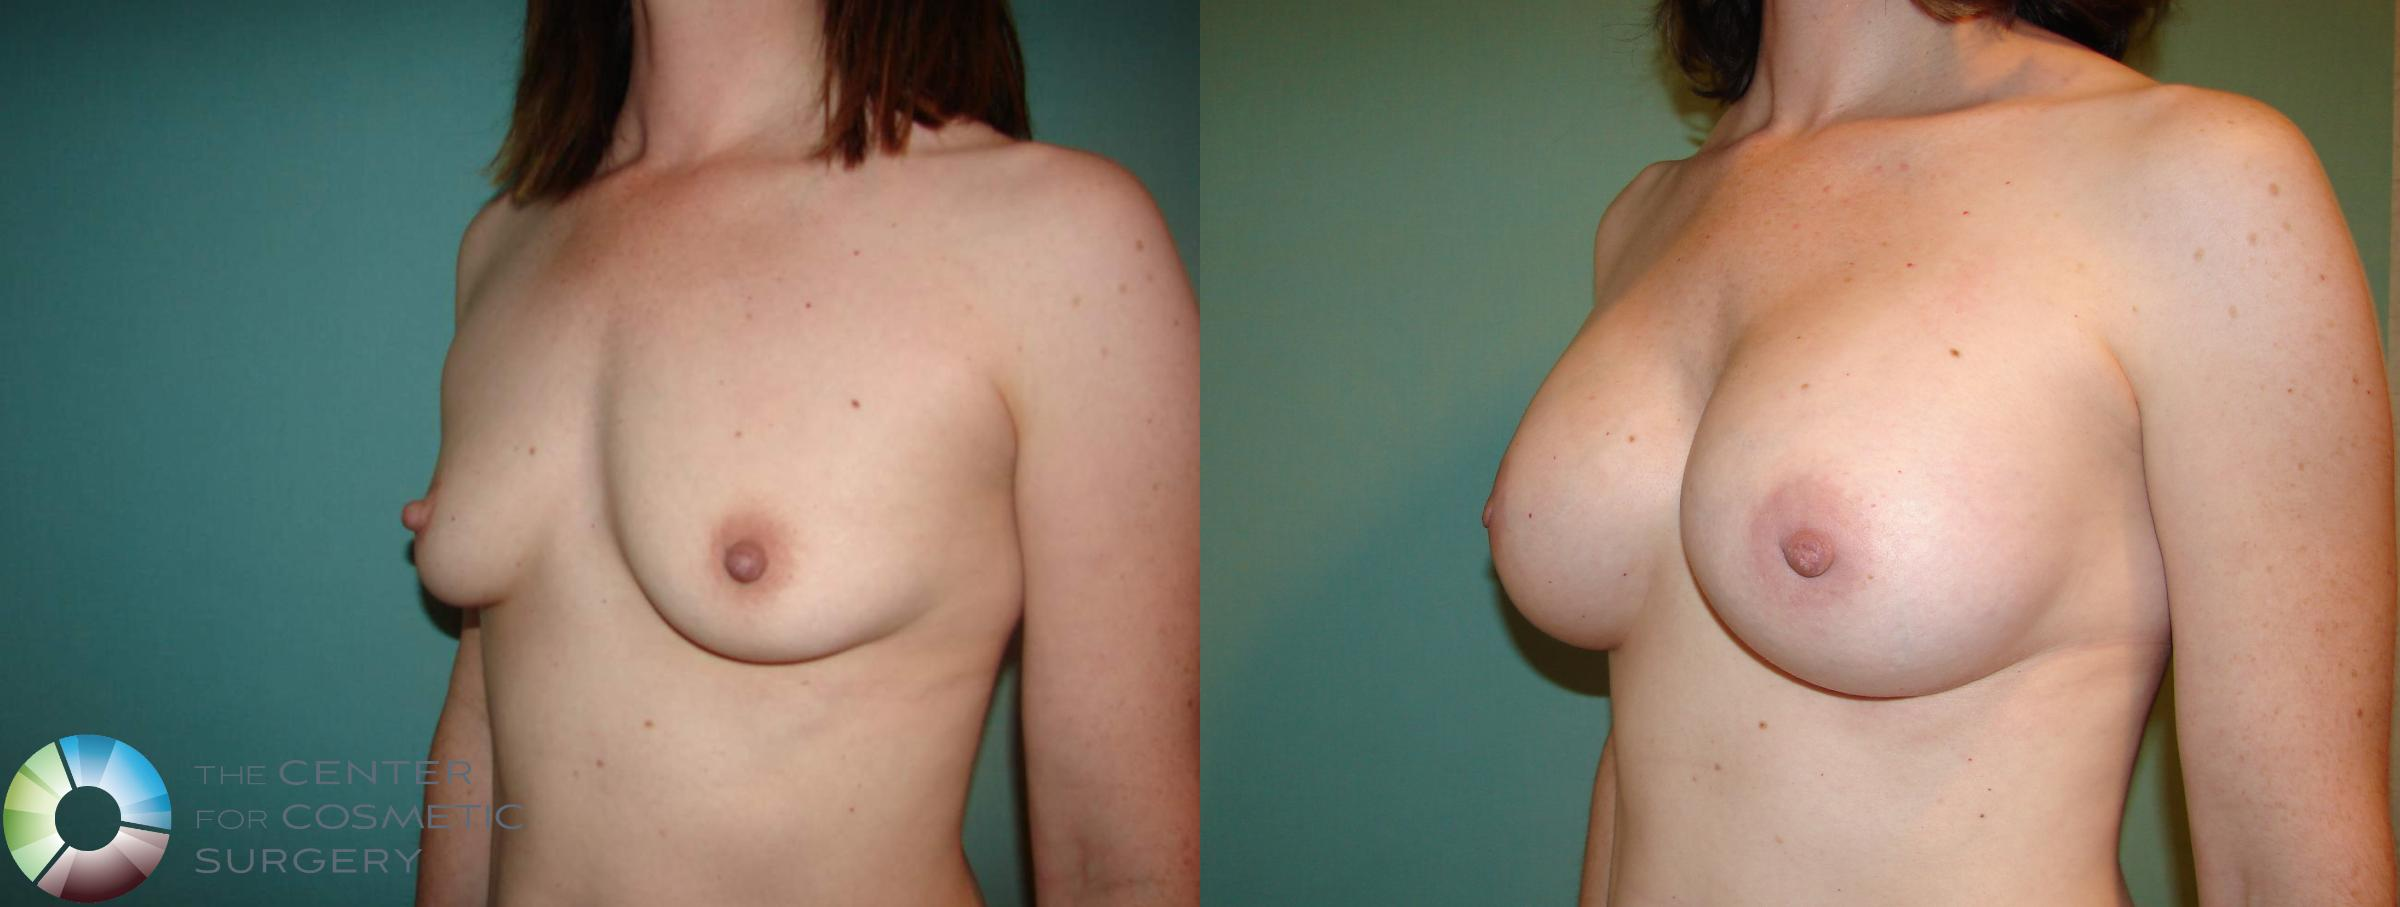 Breast Augmentation Case 529 Before & After View #3 | Golden, CO | The Center for Cosmetic Surgery